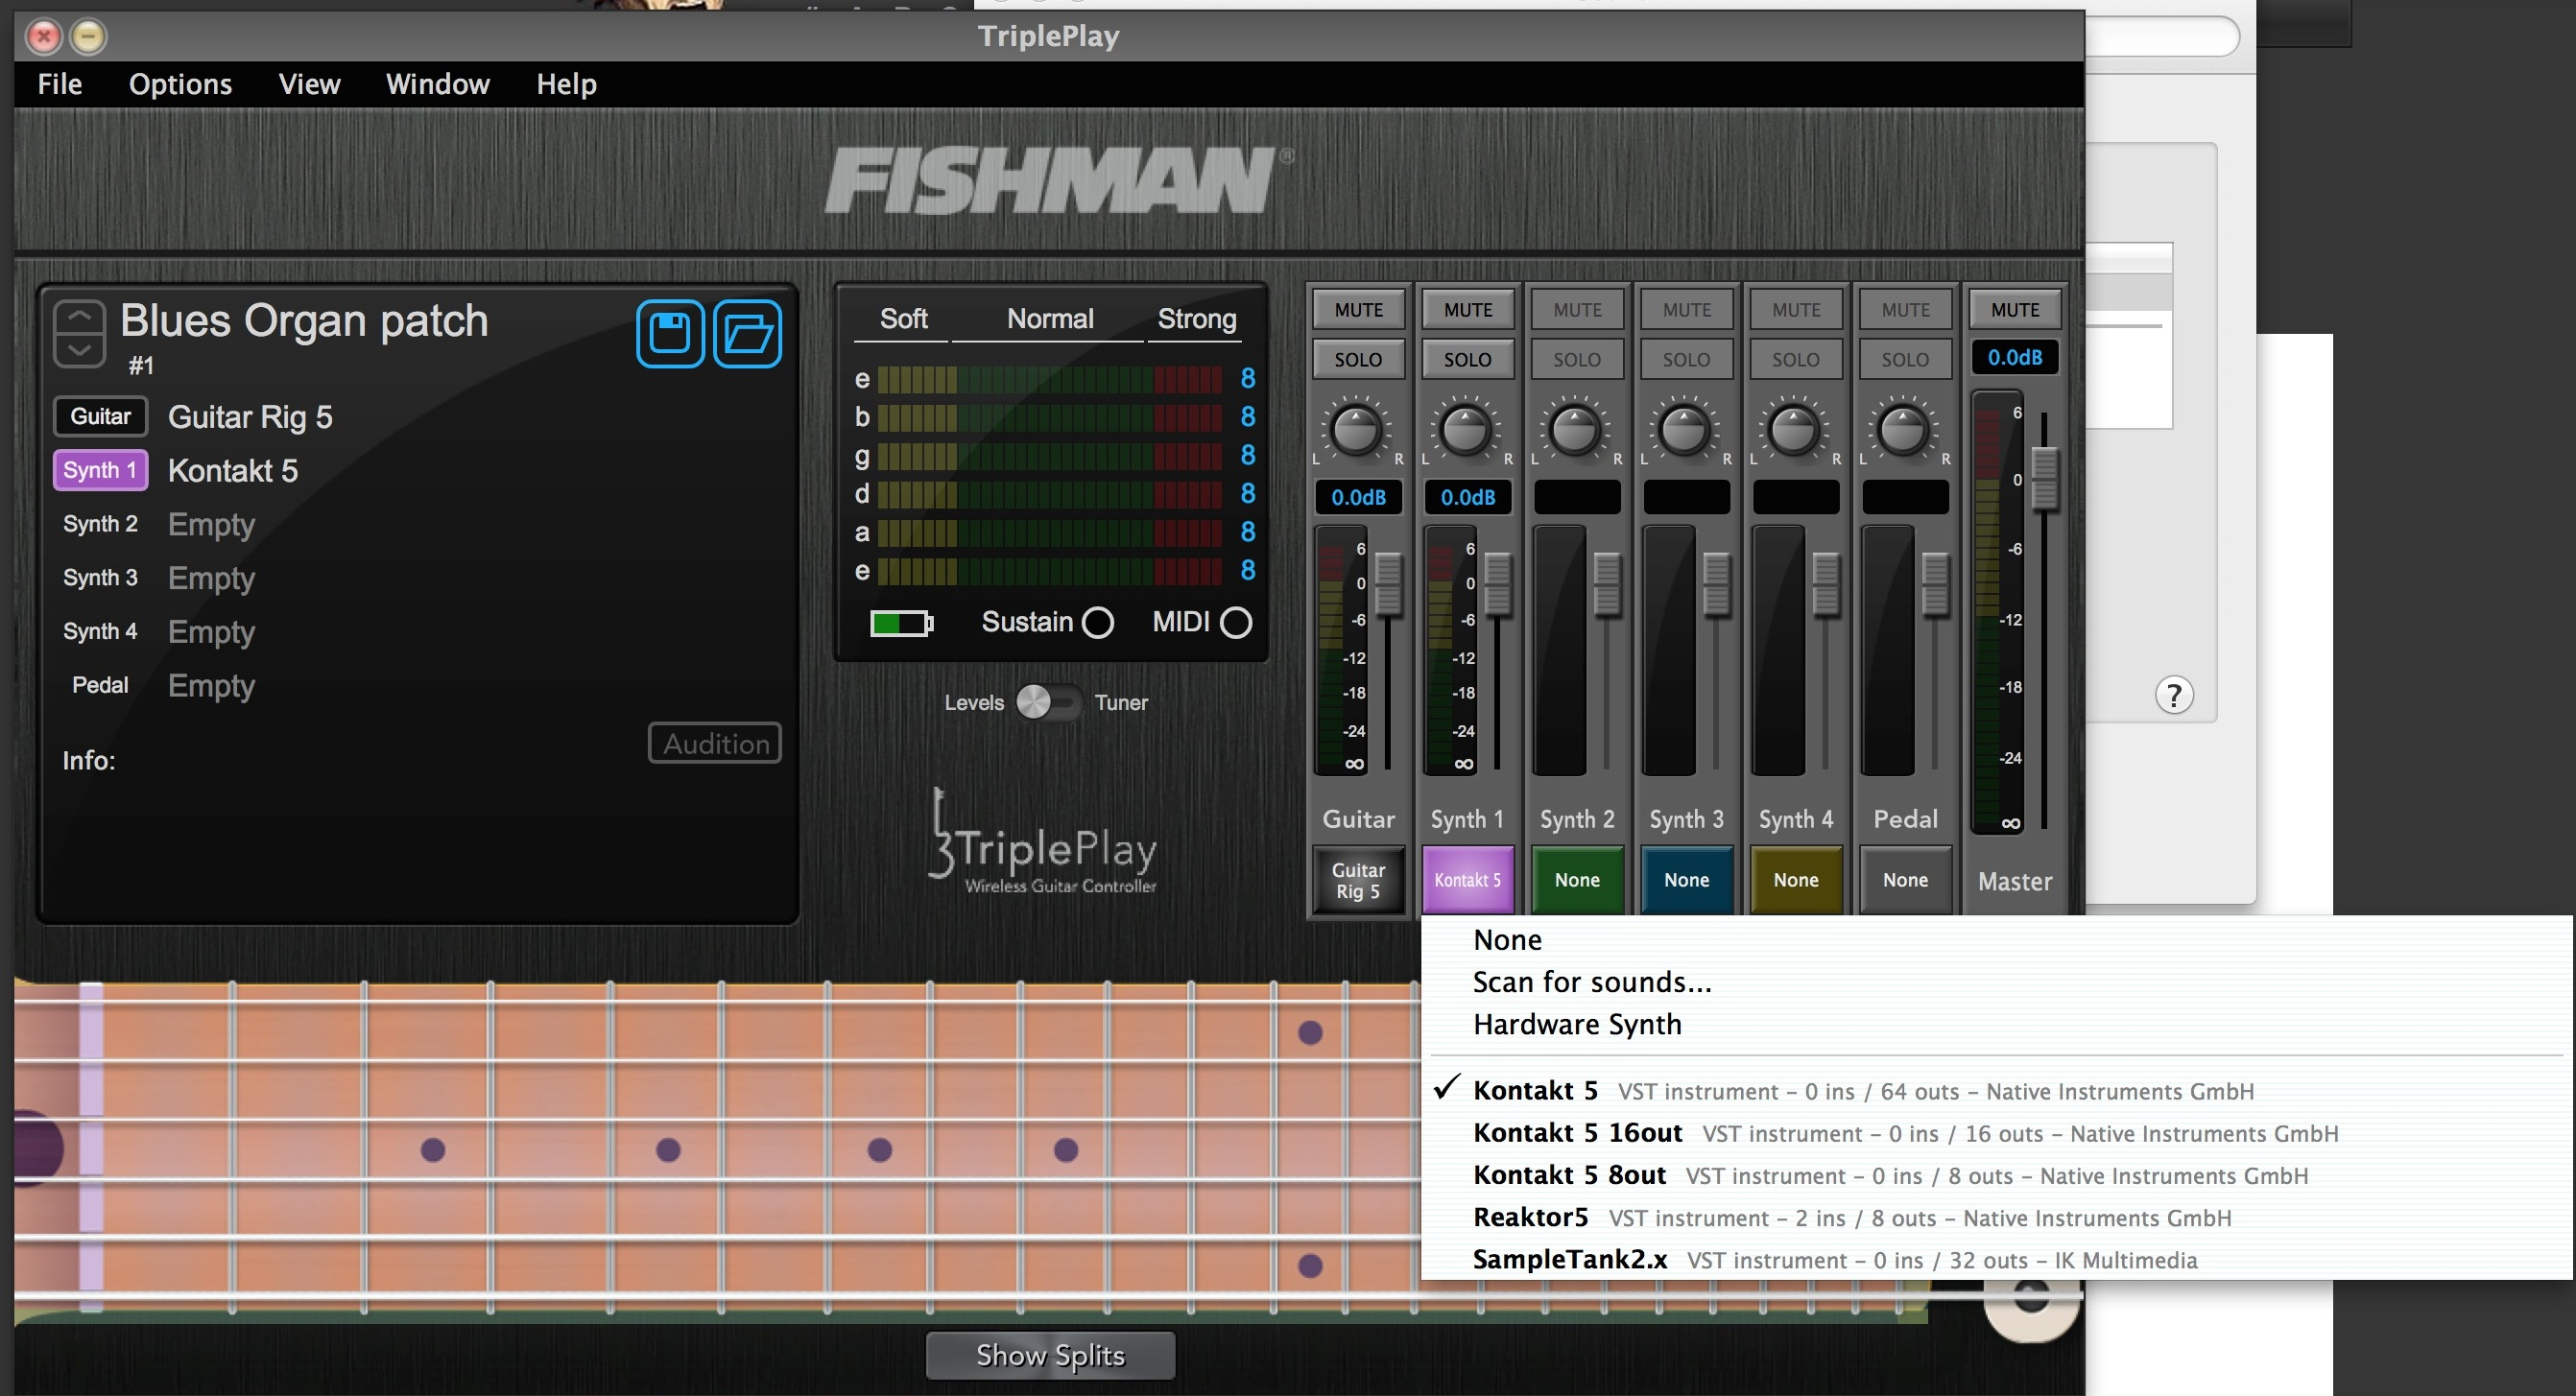 Fishman-triple-play-menu